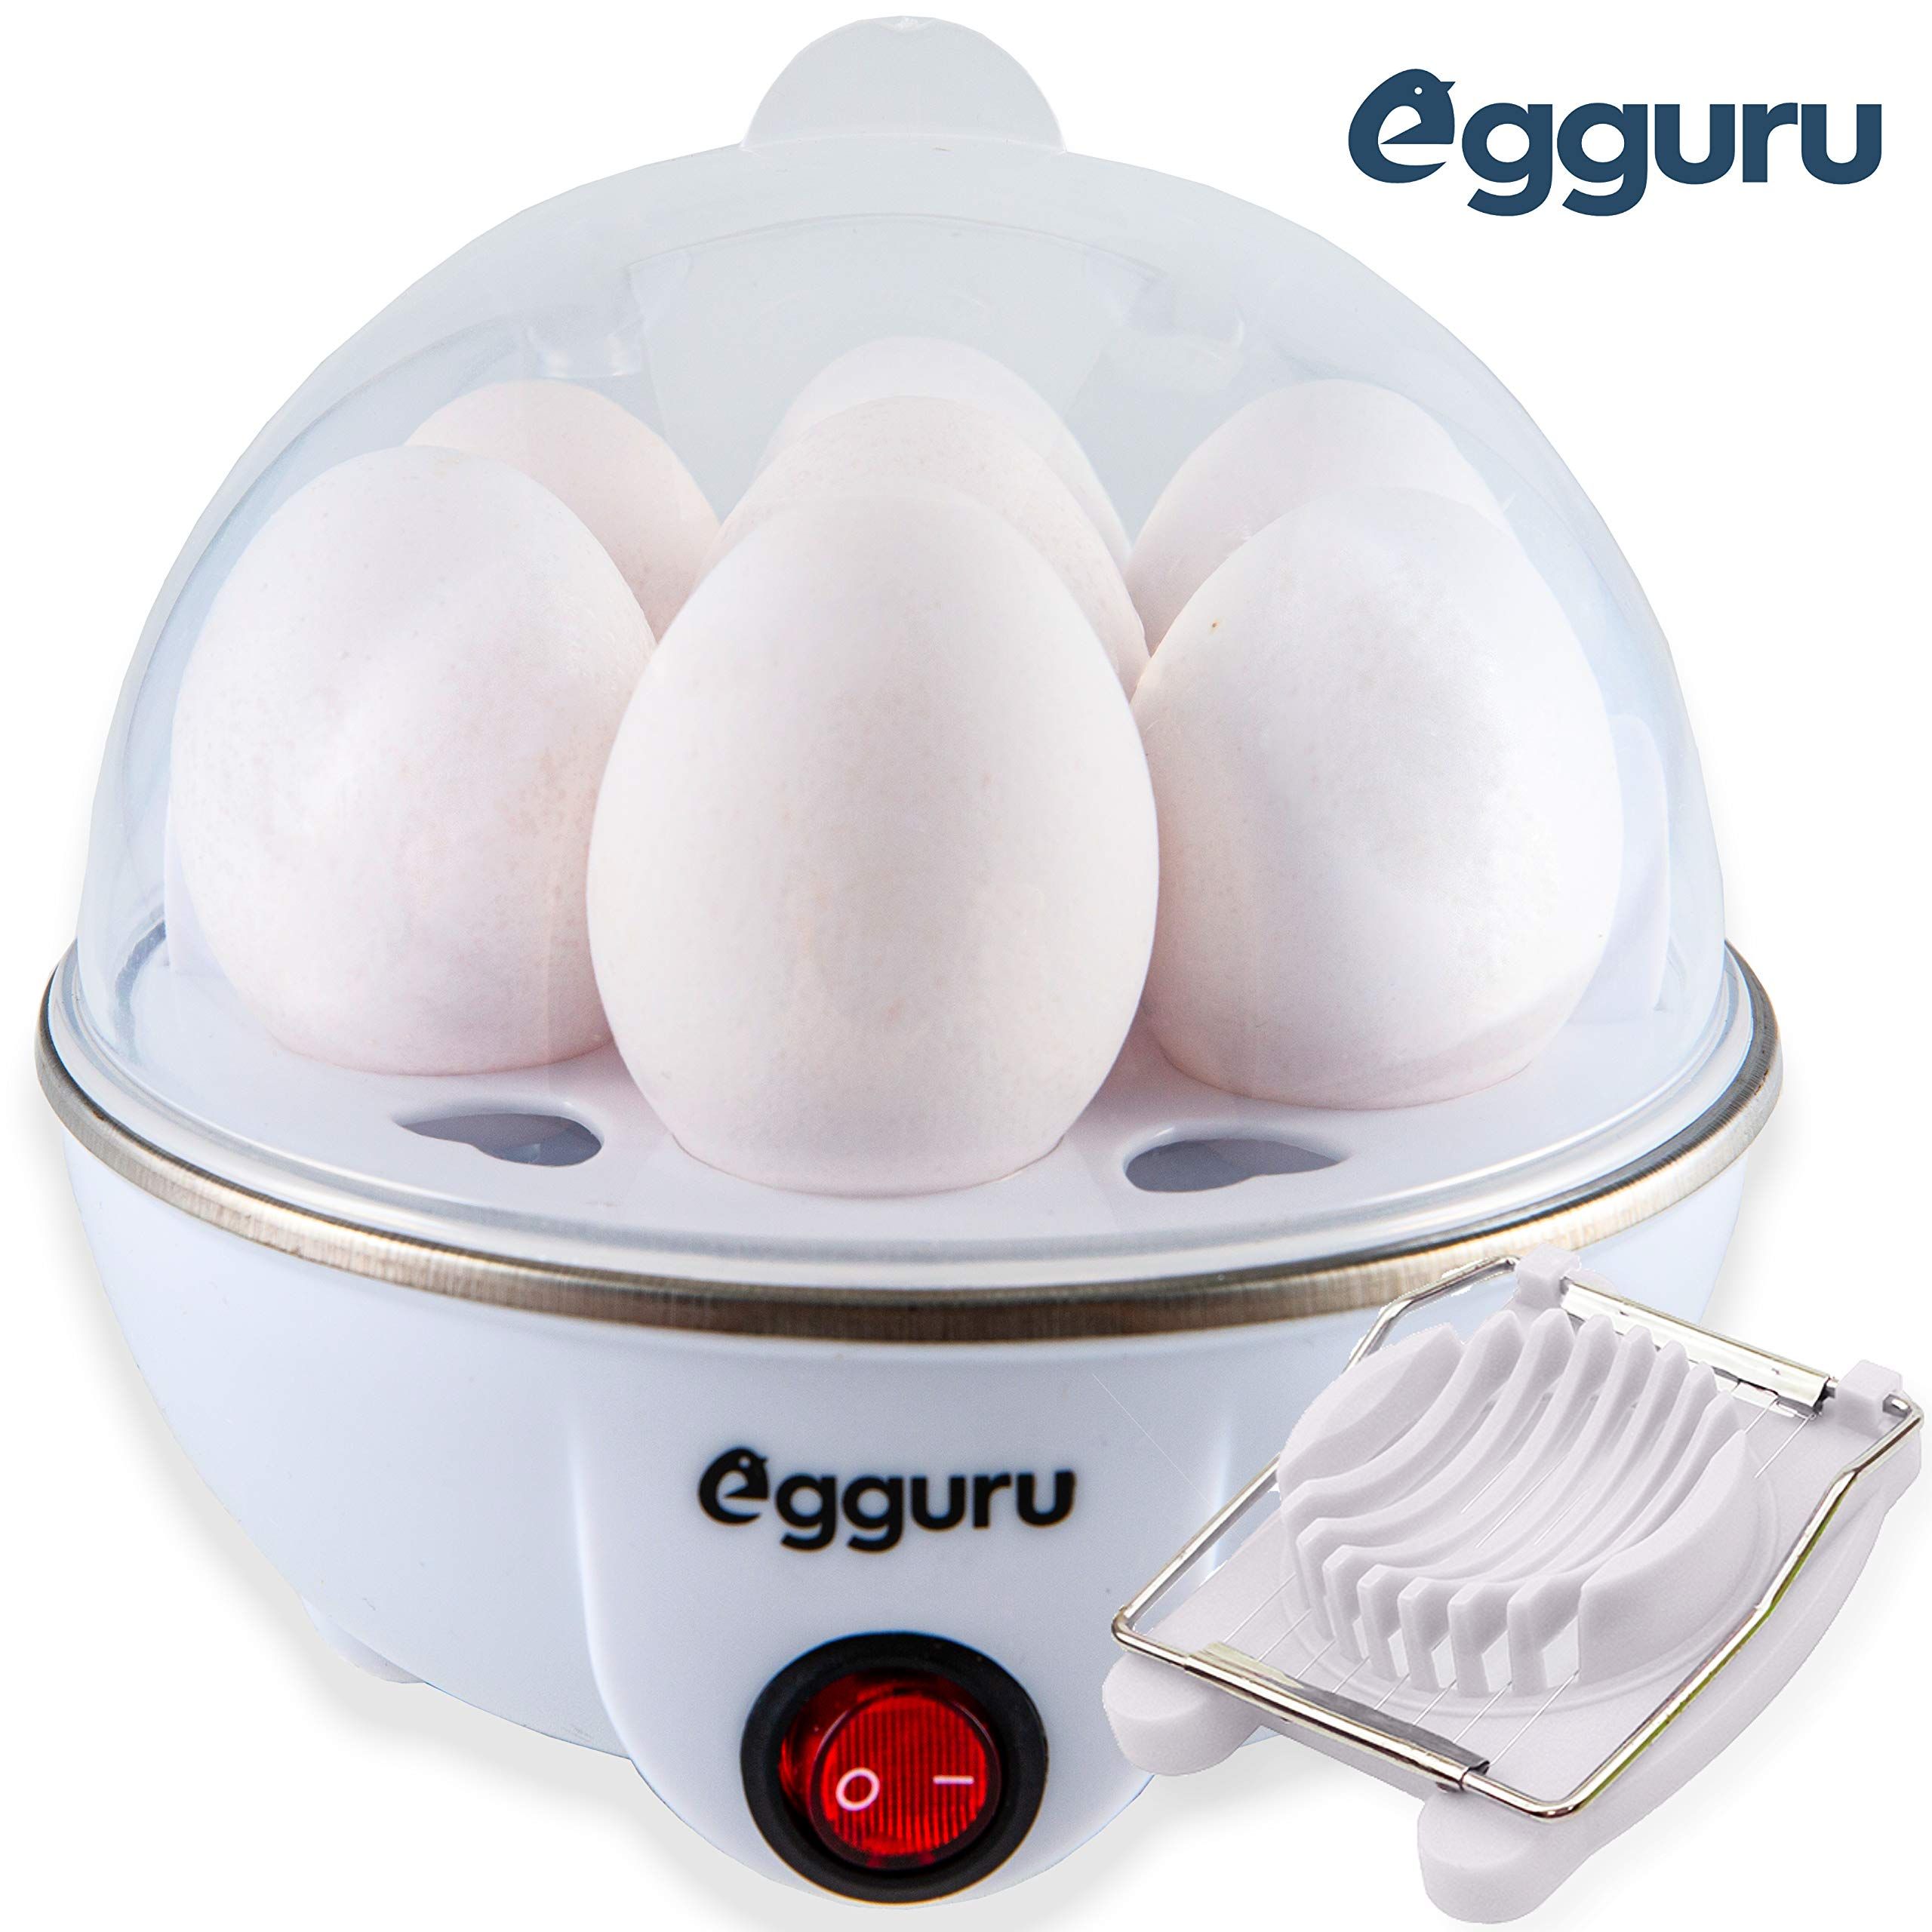 Egguru Electric Egg Cooker Boiler Maker Soft, Medium or Hard Boil, 7 Egg Capacity noise free technology Automatic Shut Off, white with egg slicer included by AE Labs